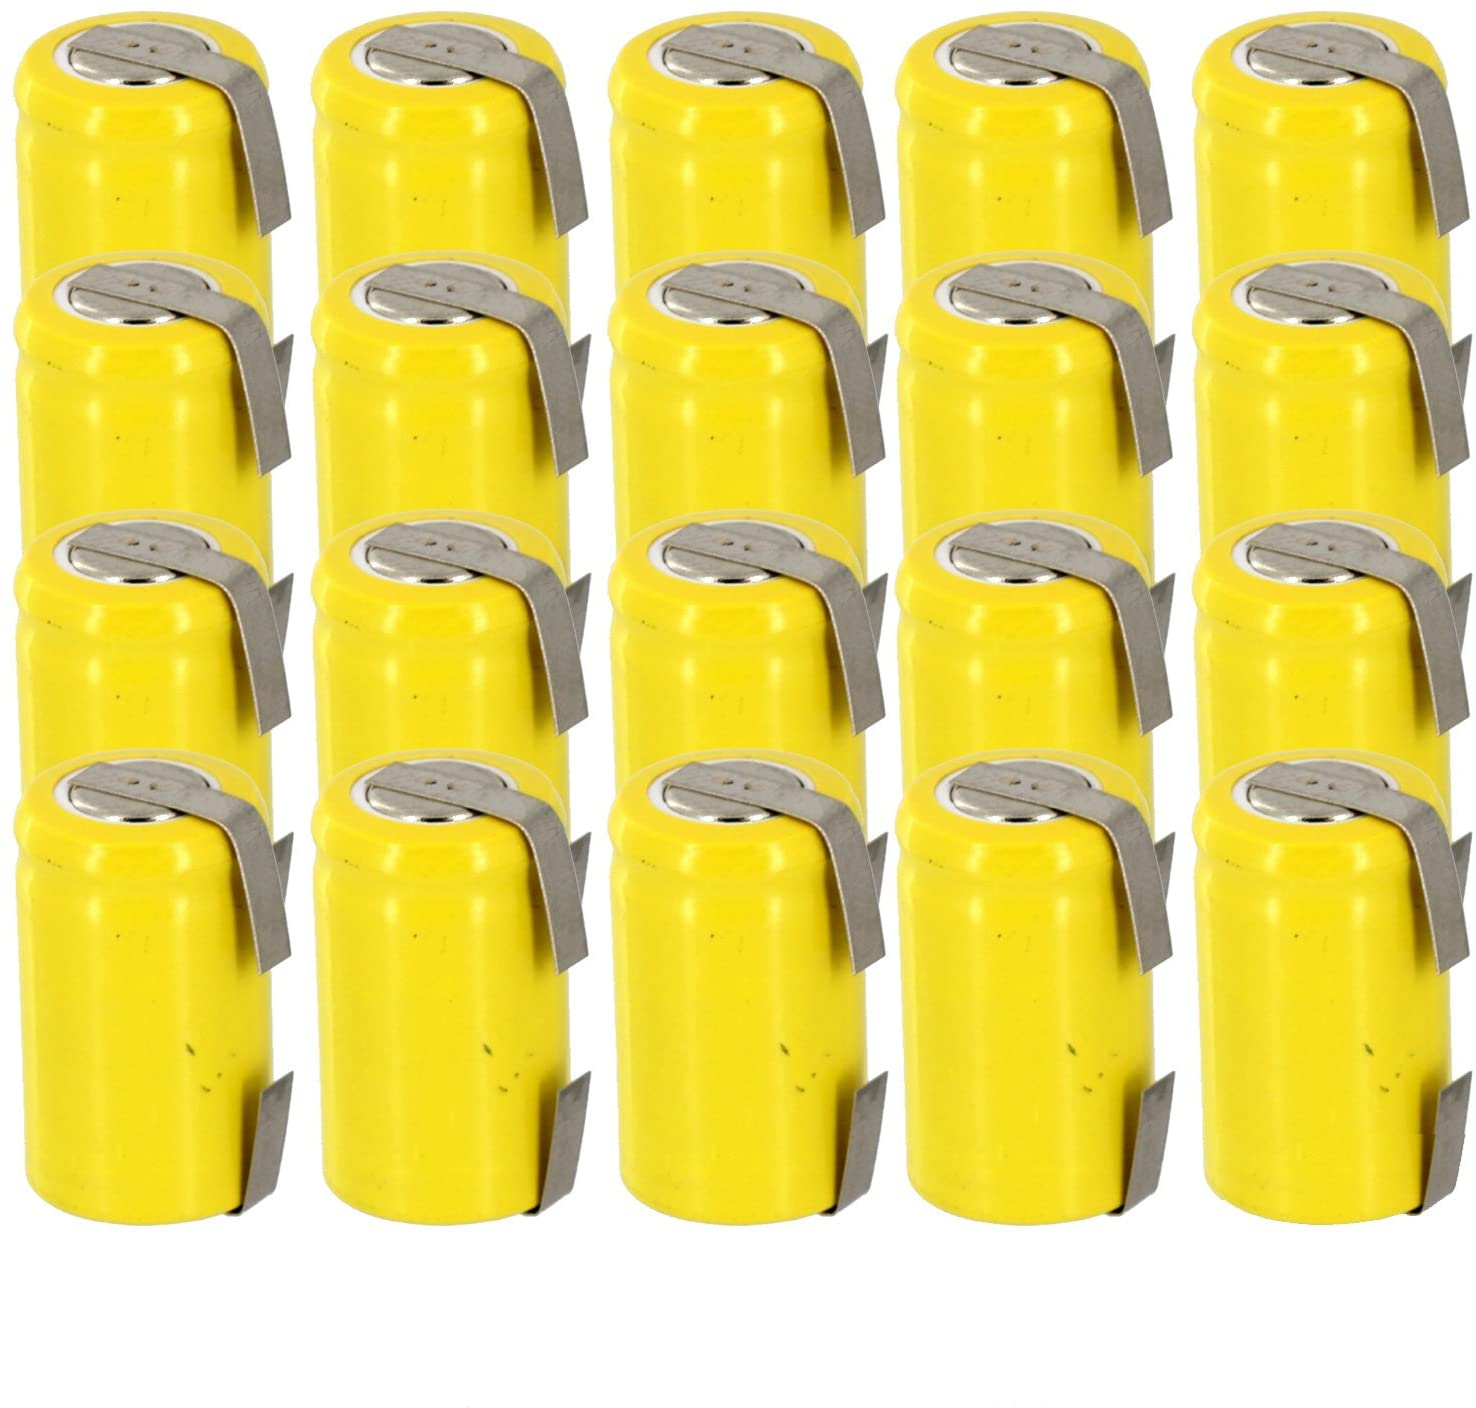 20x Exell 1/2AA NiCD 300mAh 1.2V Flat top Rechargeable Battery with Tabs